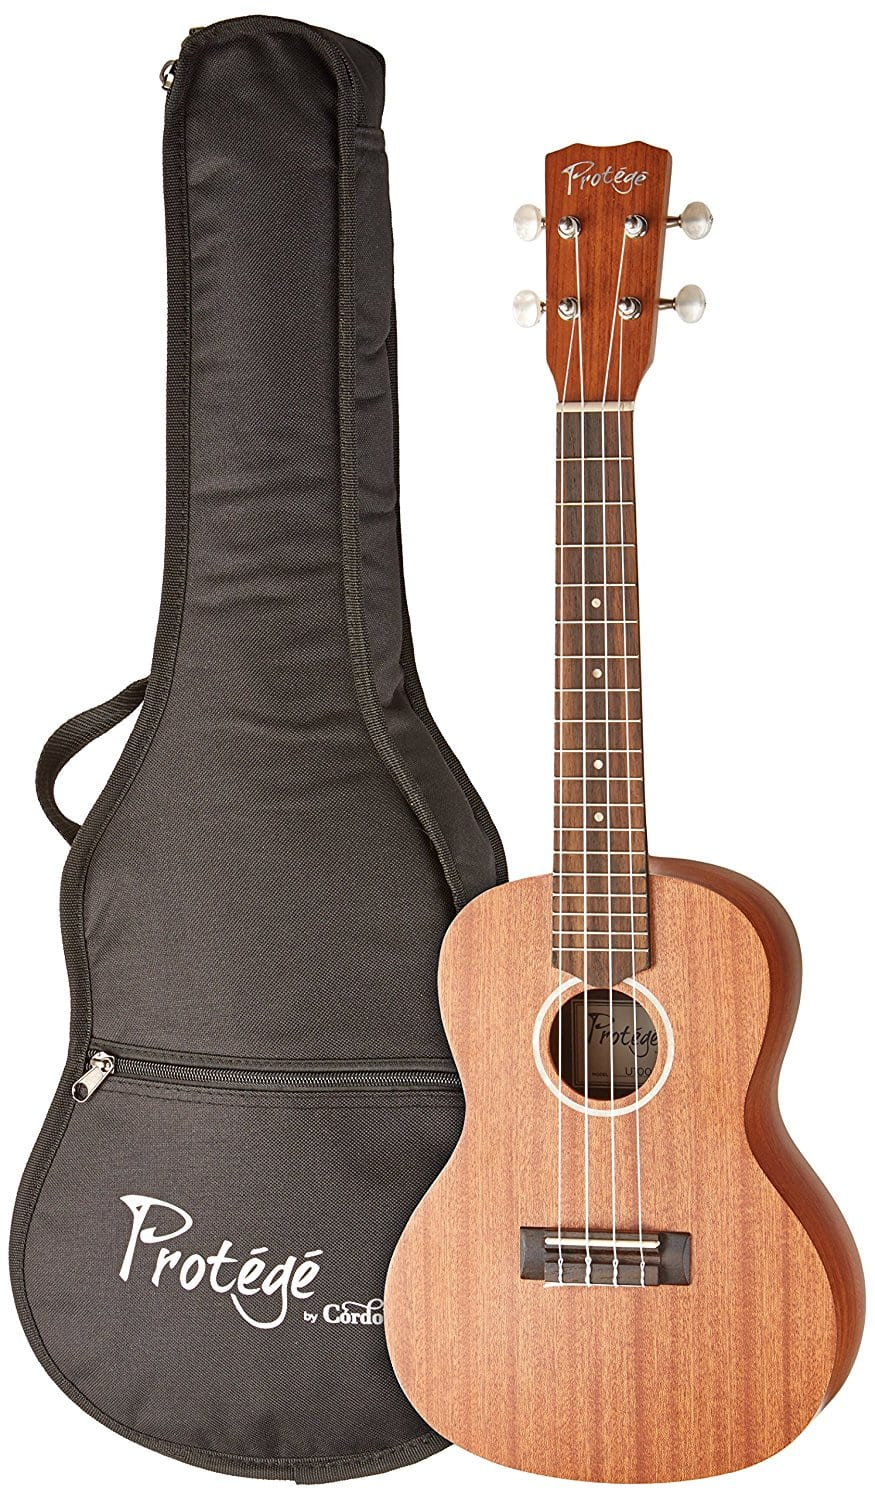 Protege by Cordoba U100CM Concert Ukulele $33.15 with Prime or $39 without @ Amazon